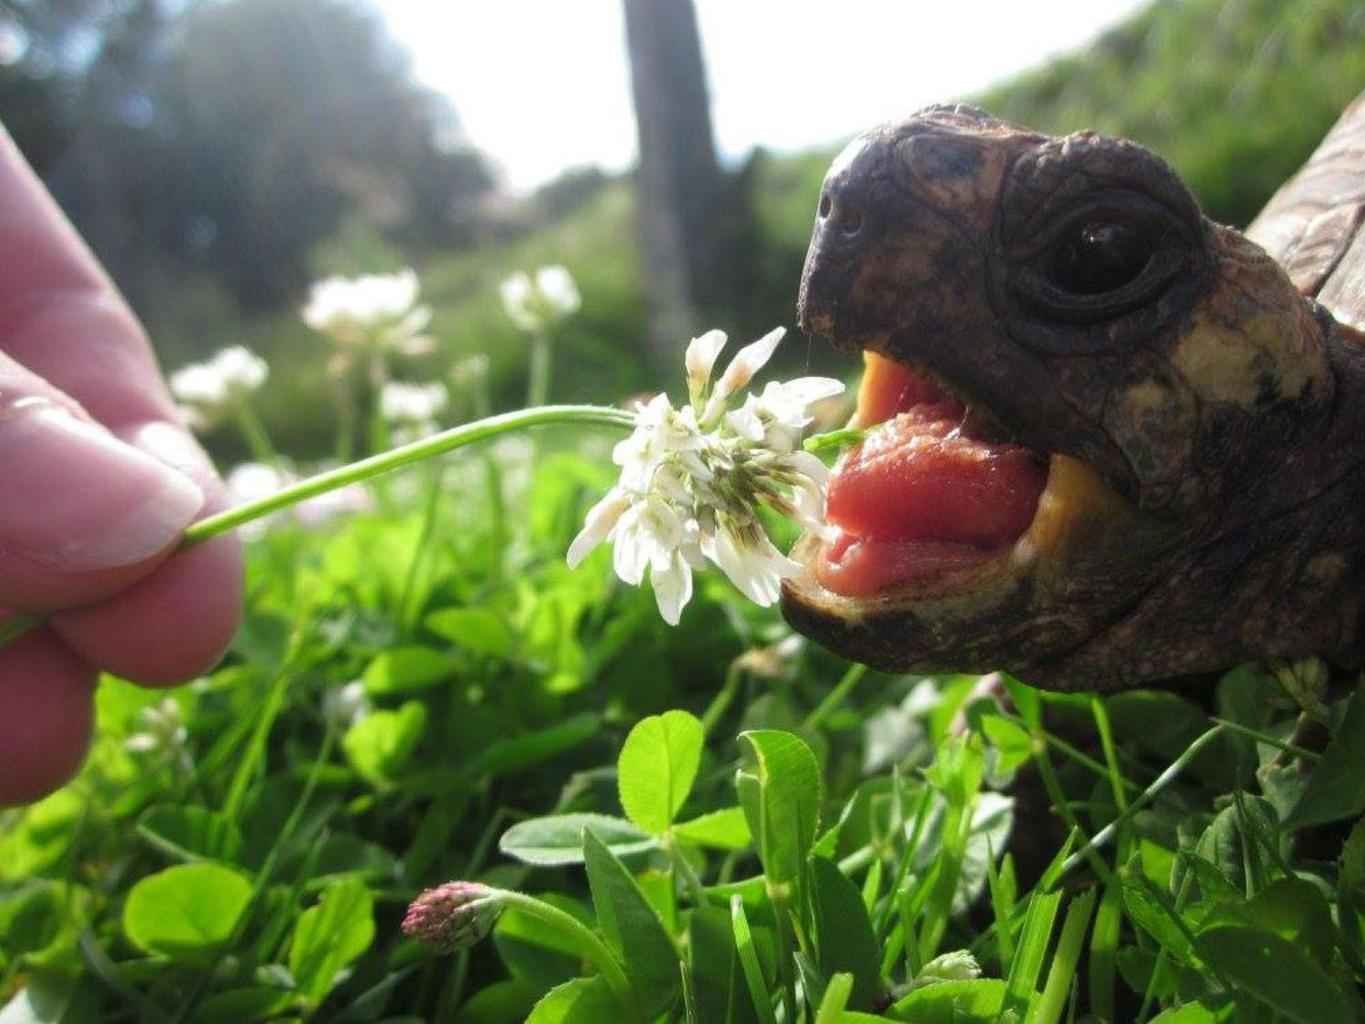 A tortoise about to munch on some lunch, spaniels playing at the seaside and a kitten paw-ing at dust are just some of the images that are in the running for the RSPCA's People's Choice award this year. Tags: People's Choice Award RSPCA tortoise